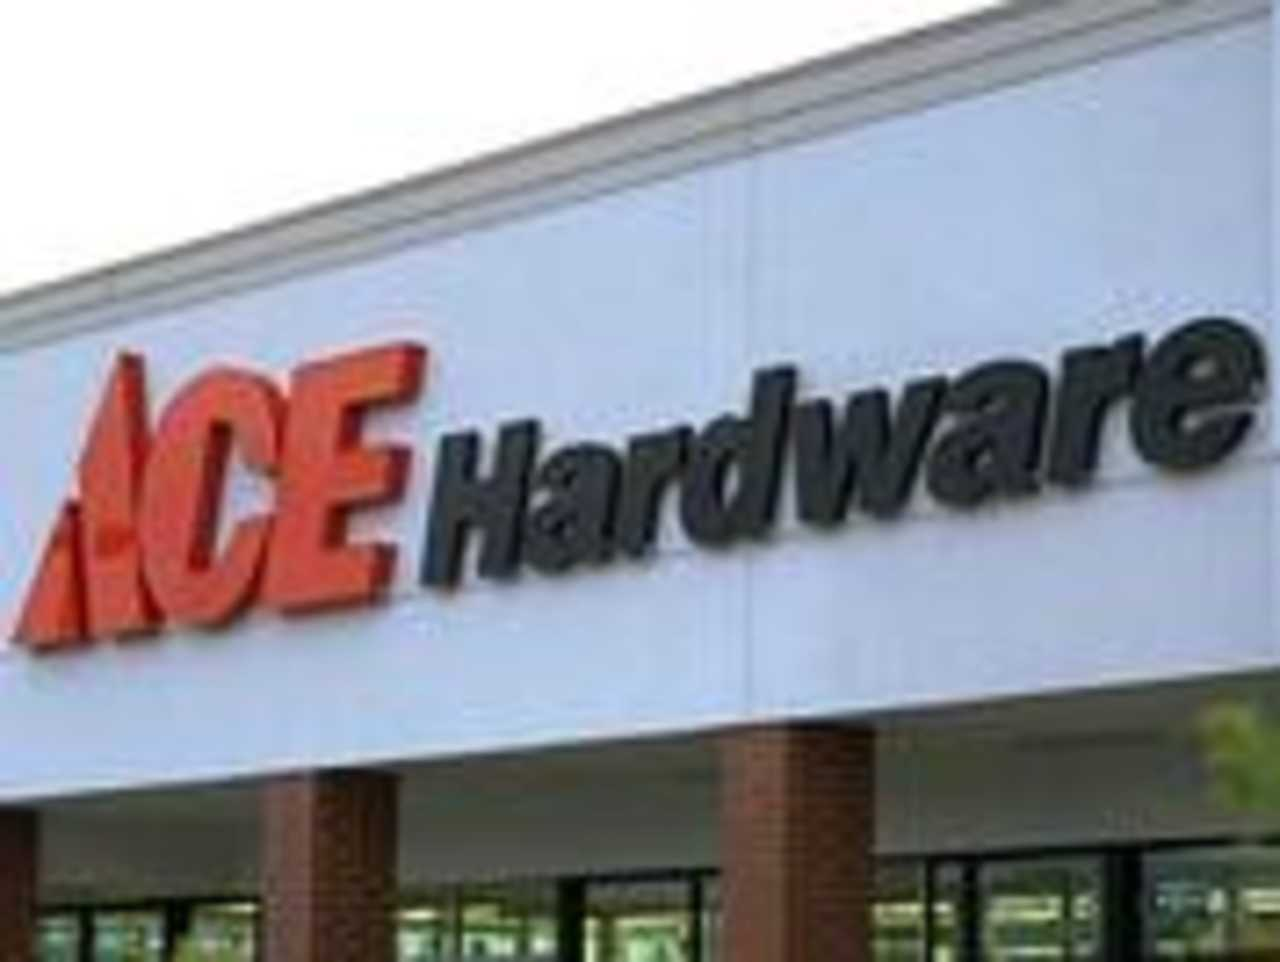 Bjorkman's Ace Hardware - Shopping - Hardware Stores in McHenry IL